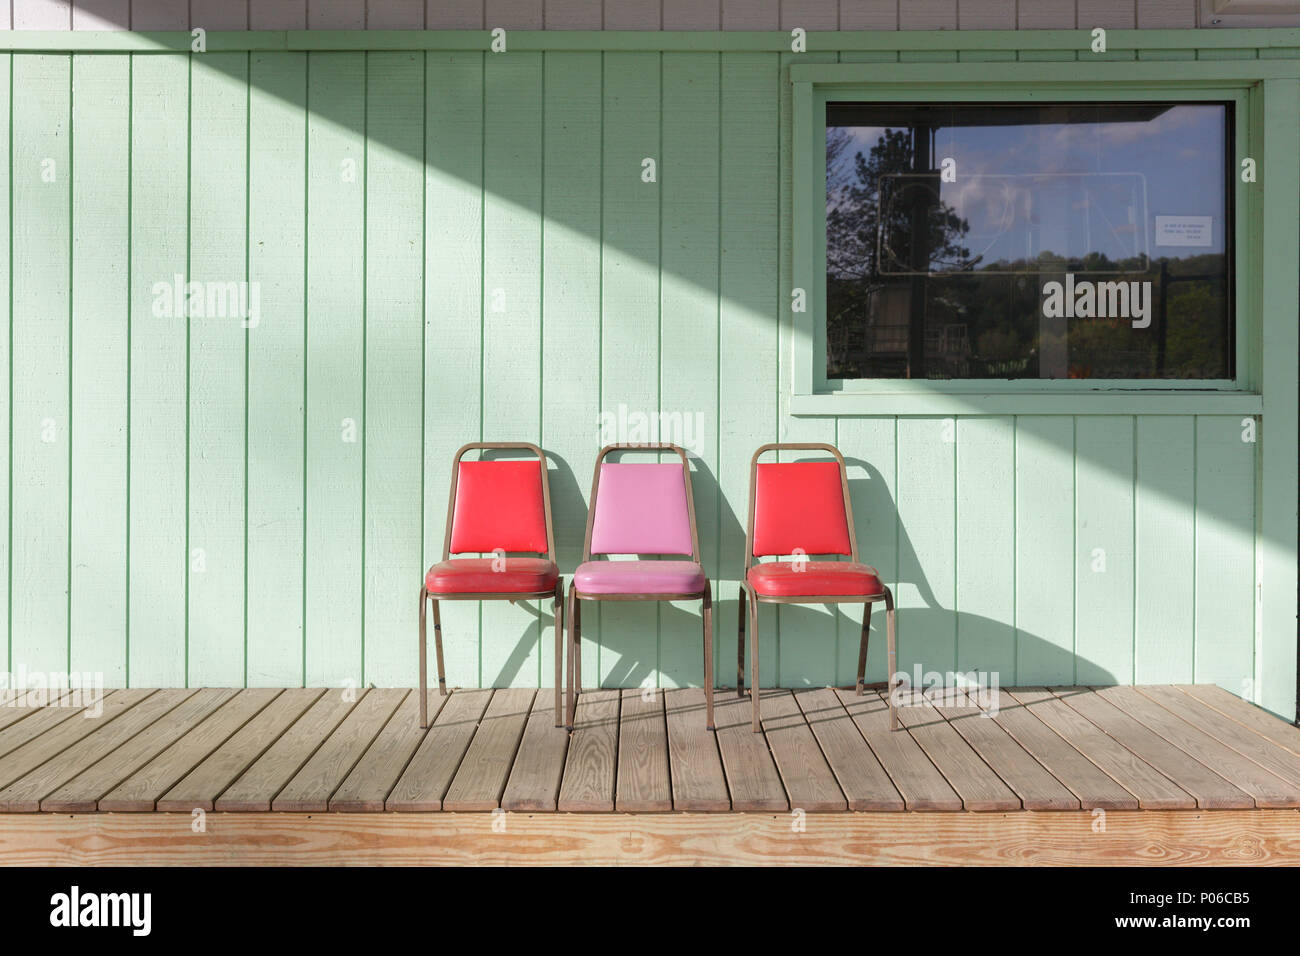 AMSTERDAM, NY/USA - MAY 6 2017: Three chairs on a porch near Amsterdam, New York State, USA. - Stock Image